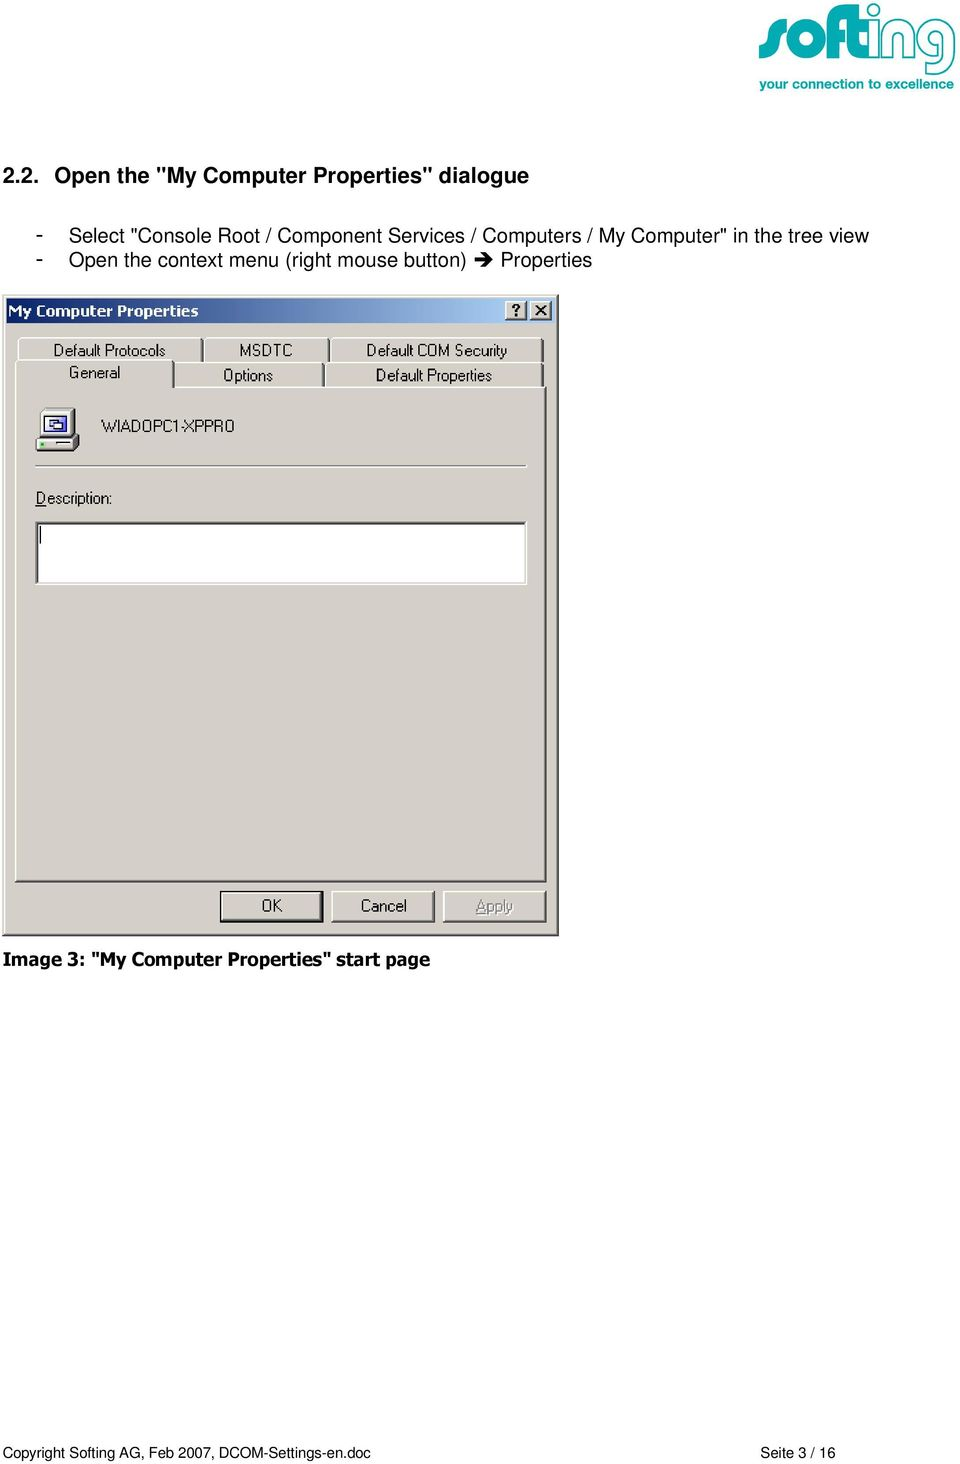 DCOM settings for computer-to-computer communication between